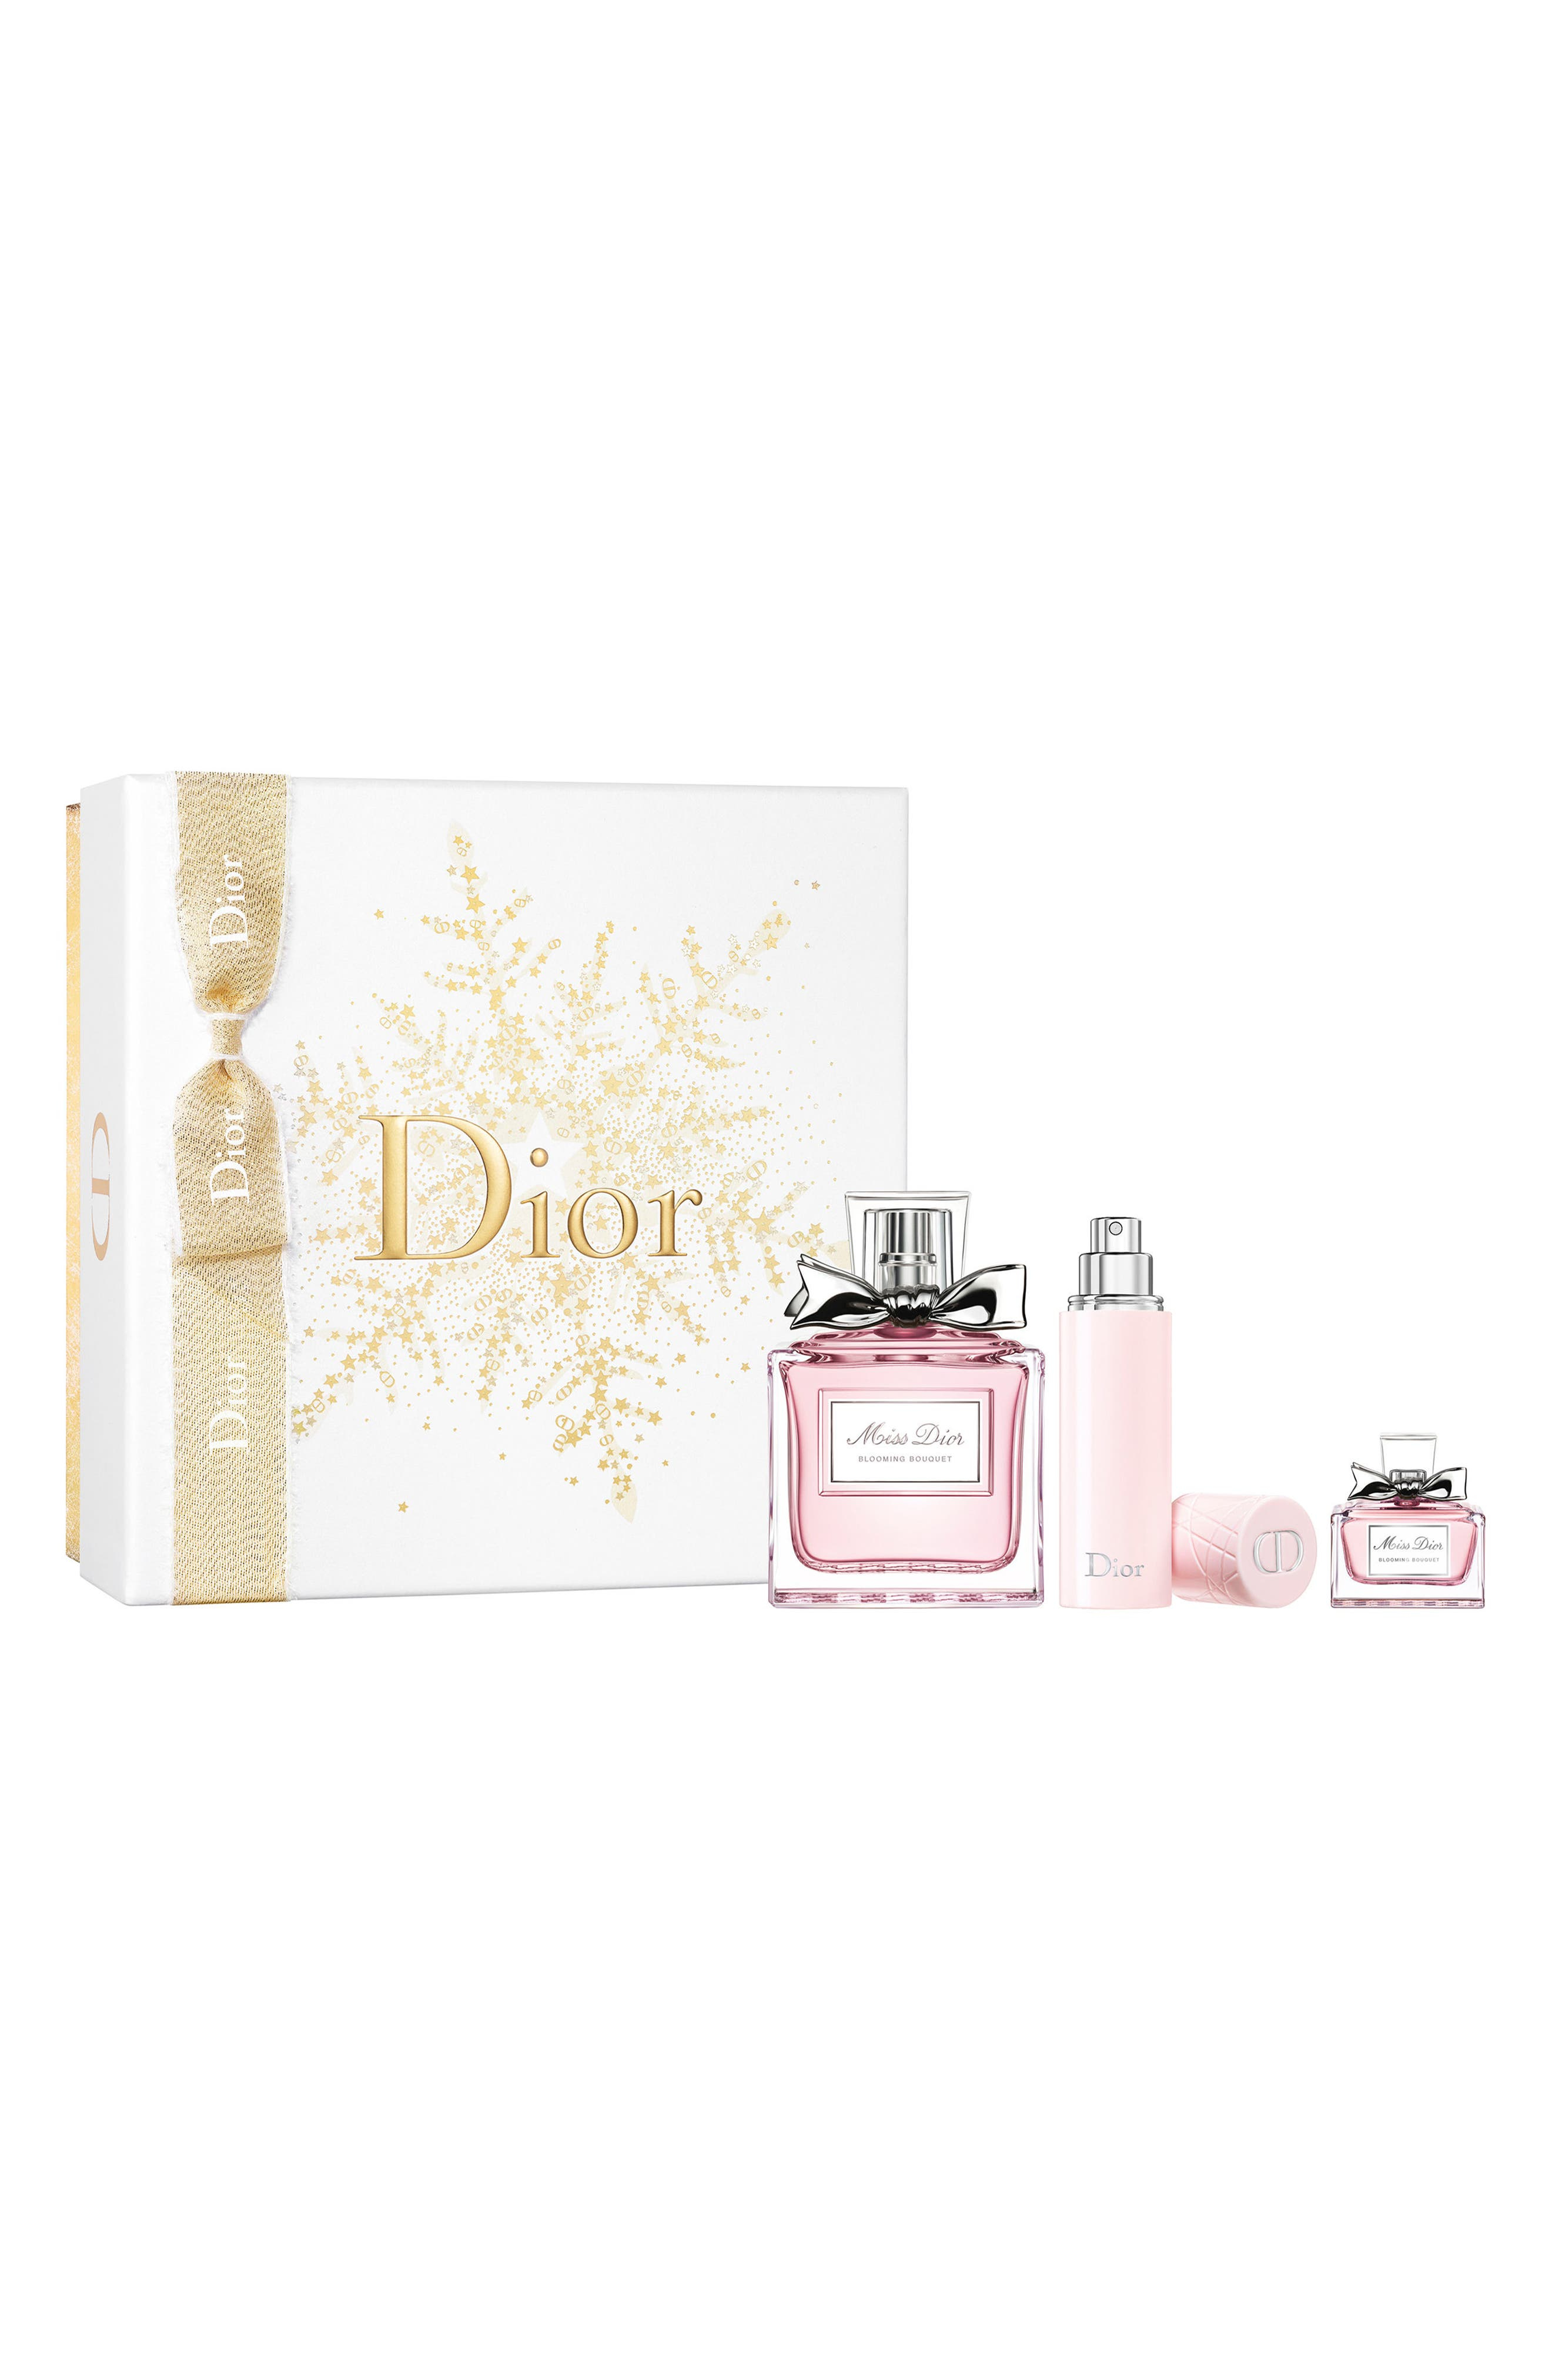 Main Image - Dior Miss Dior Blooming Bouquet Eau de Toilette Signature Set